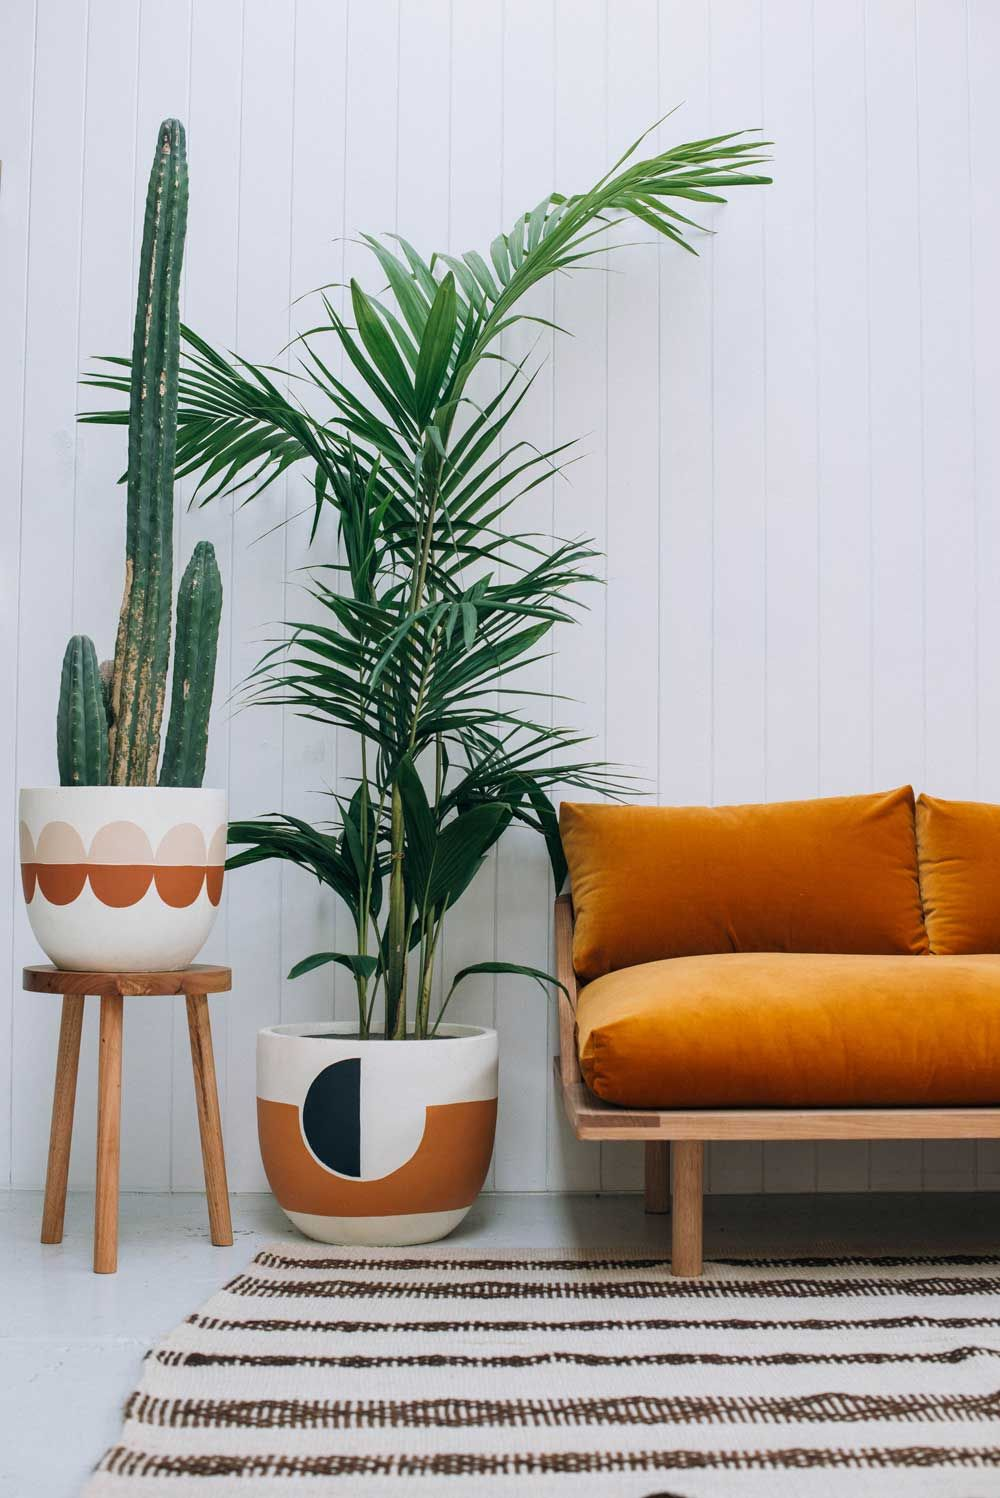 Plante D'interieur Orange Plants Botanical Retro Home Decor Living Room Decor Et